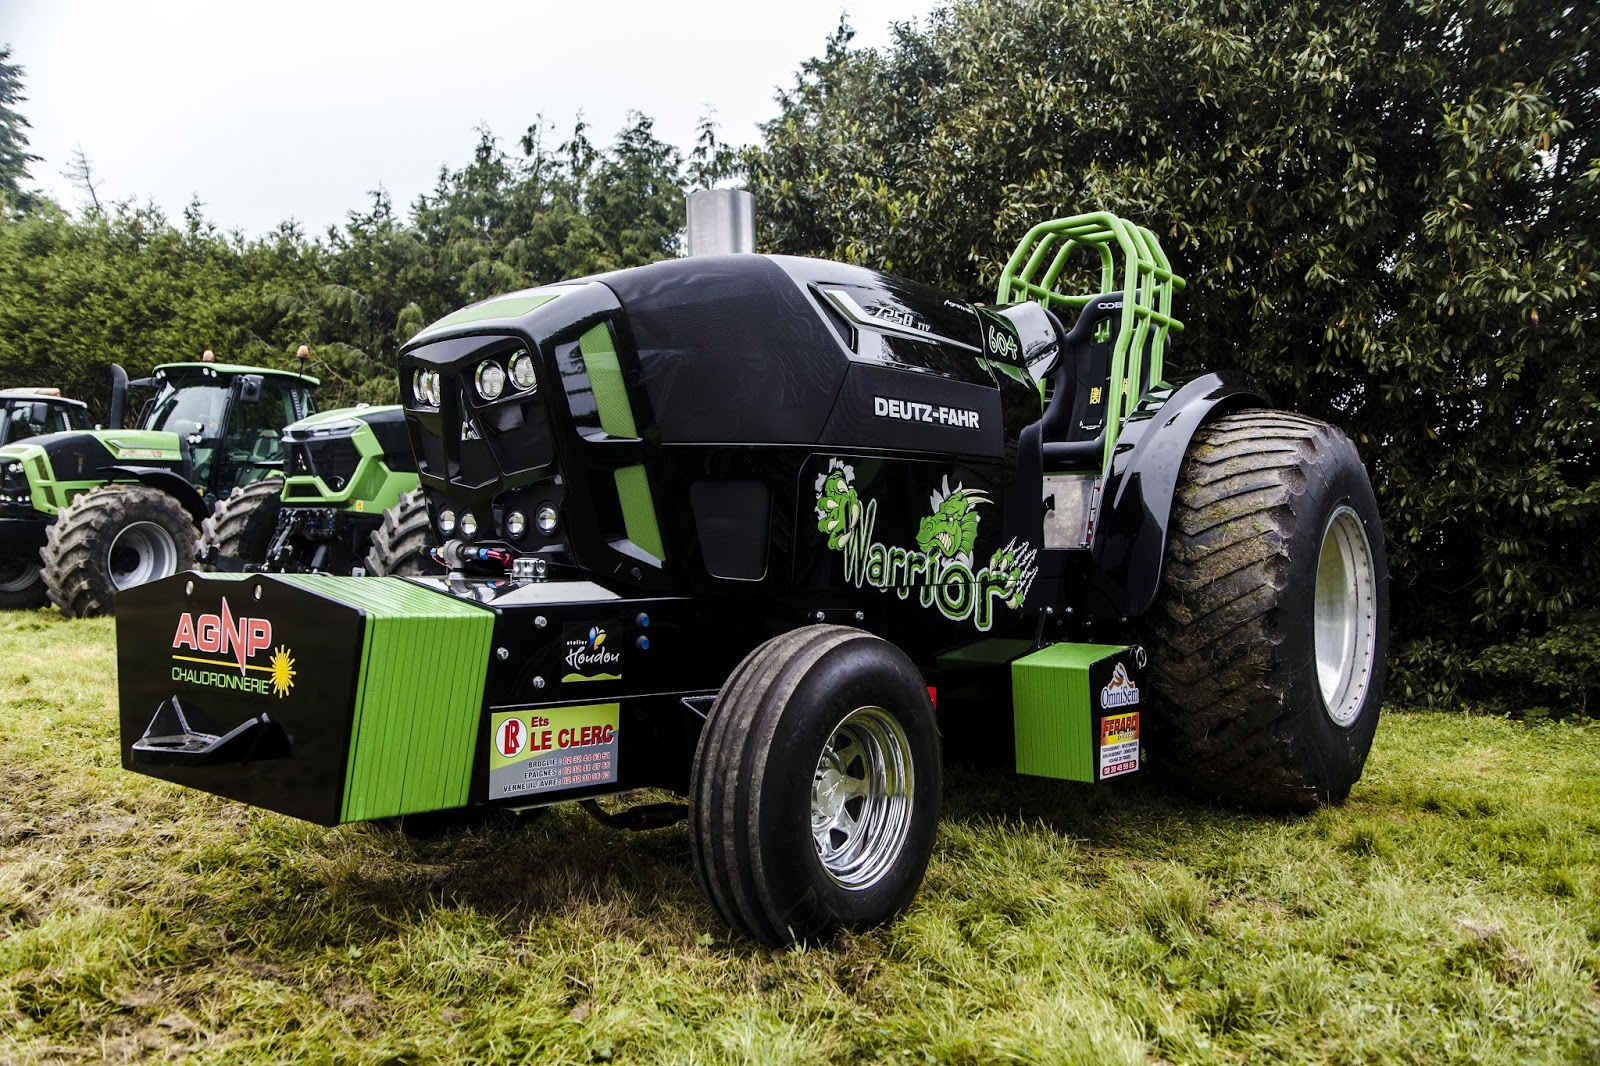 Super Stock Tractor Pulling Engines : Tractor pulling news pullingworld the new warrior